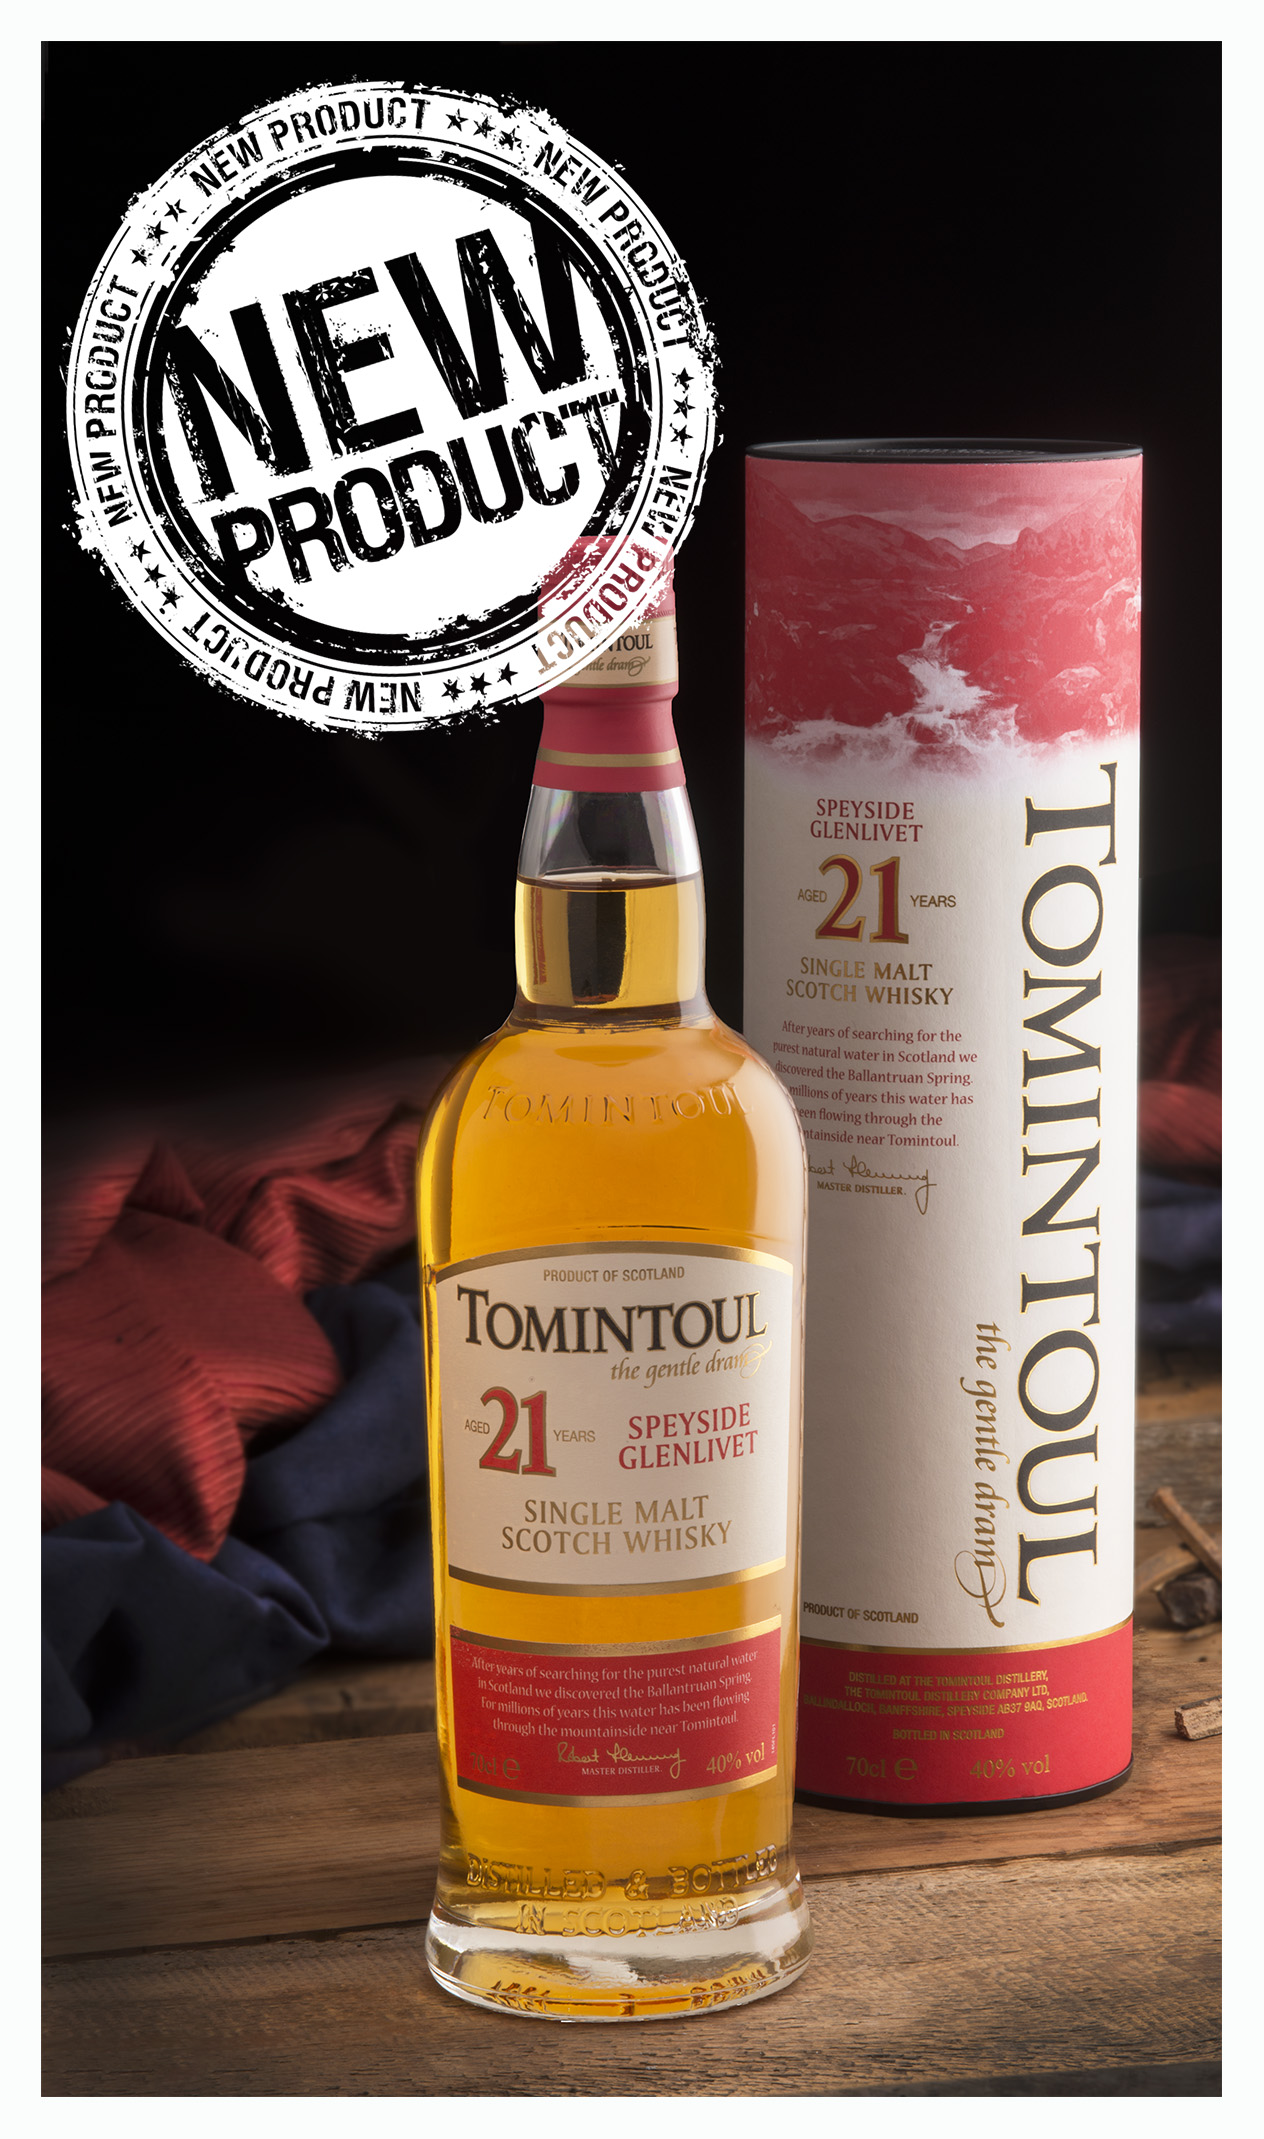 Tom 21 new product